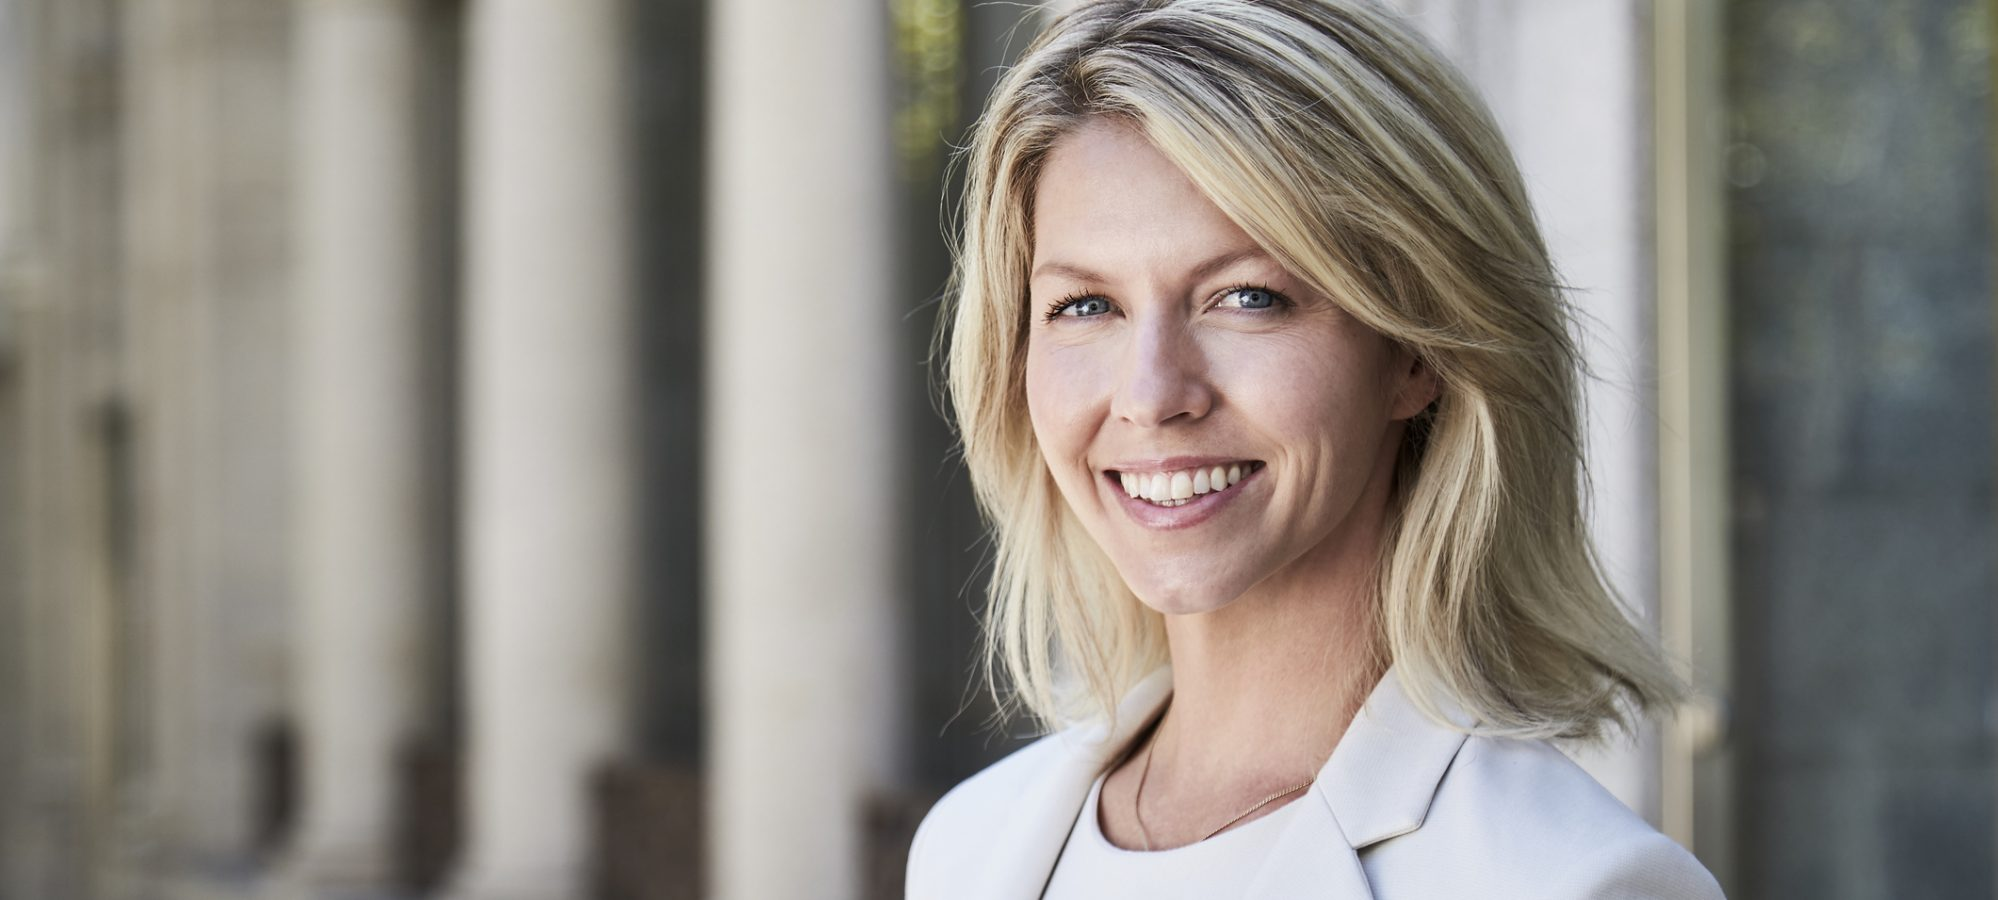 Image of woman accountant smiling at camera - Beene Garter has high percentage of female owners